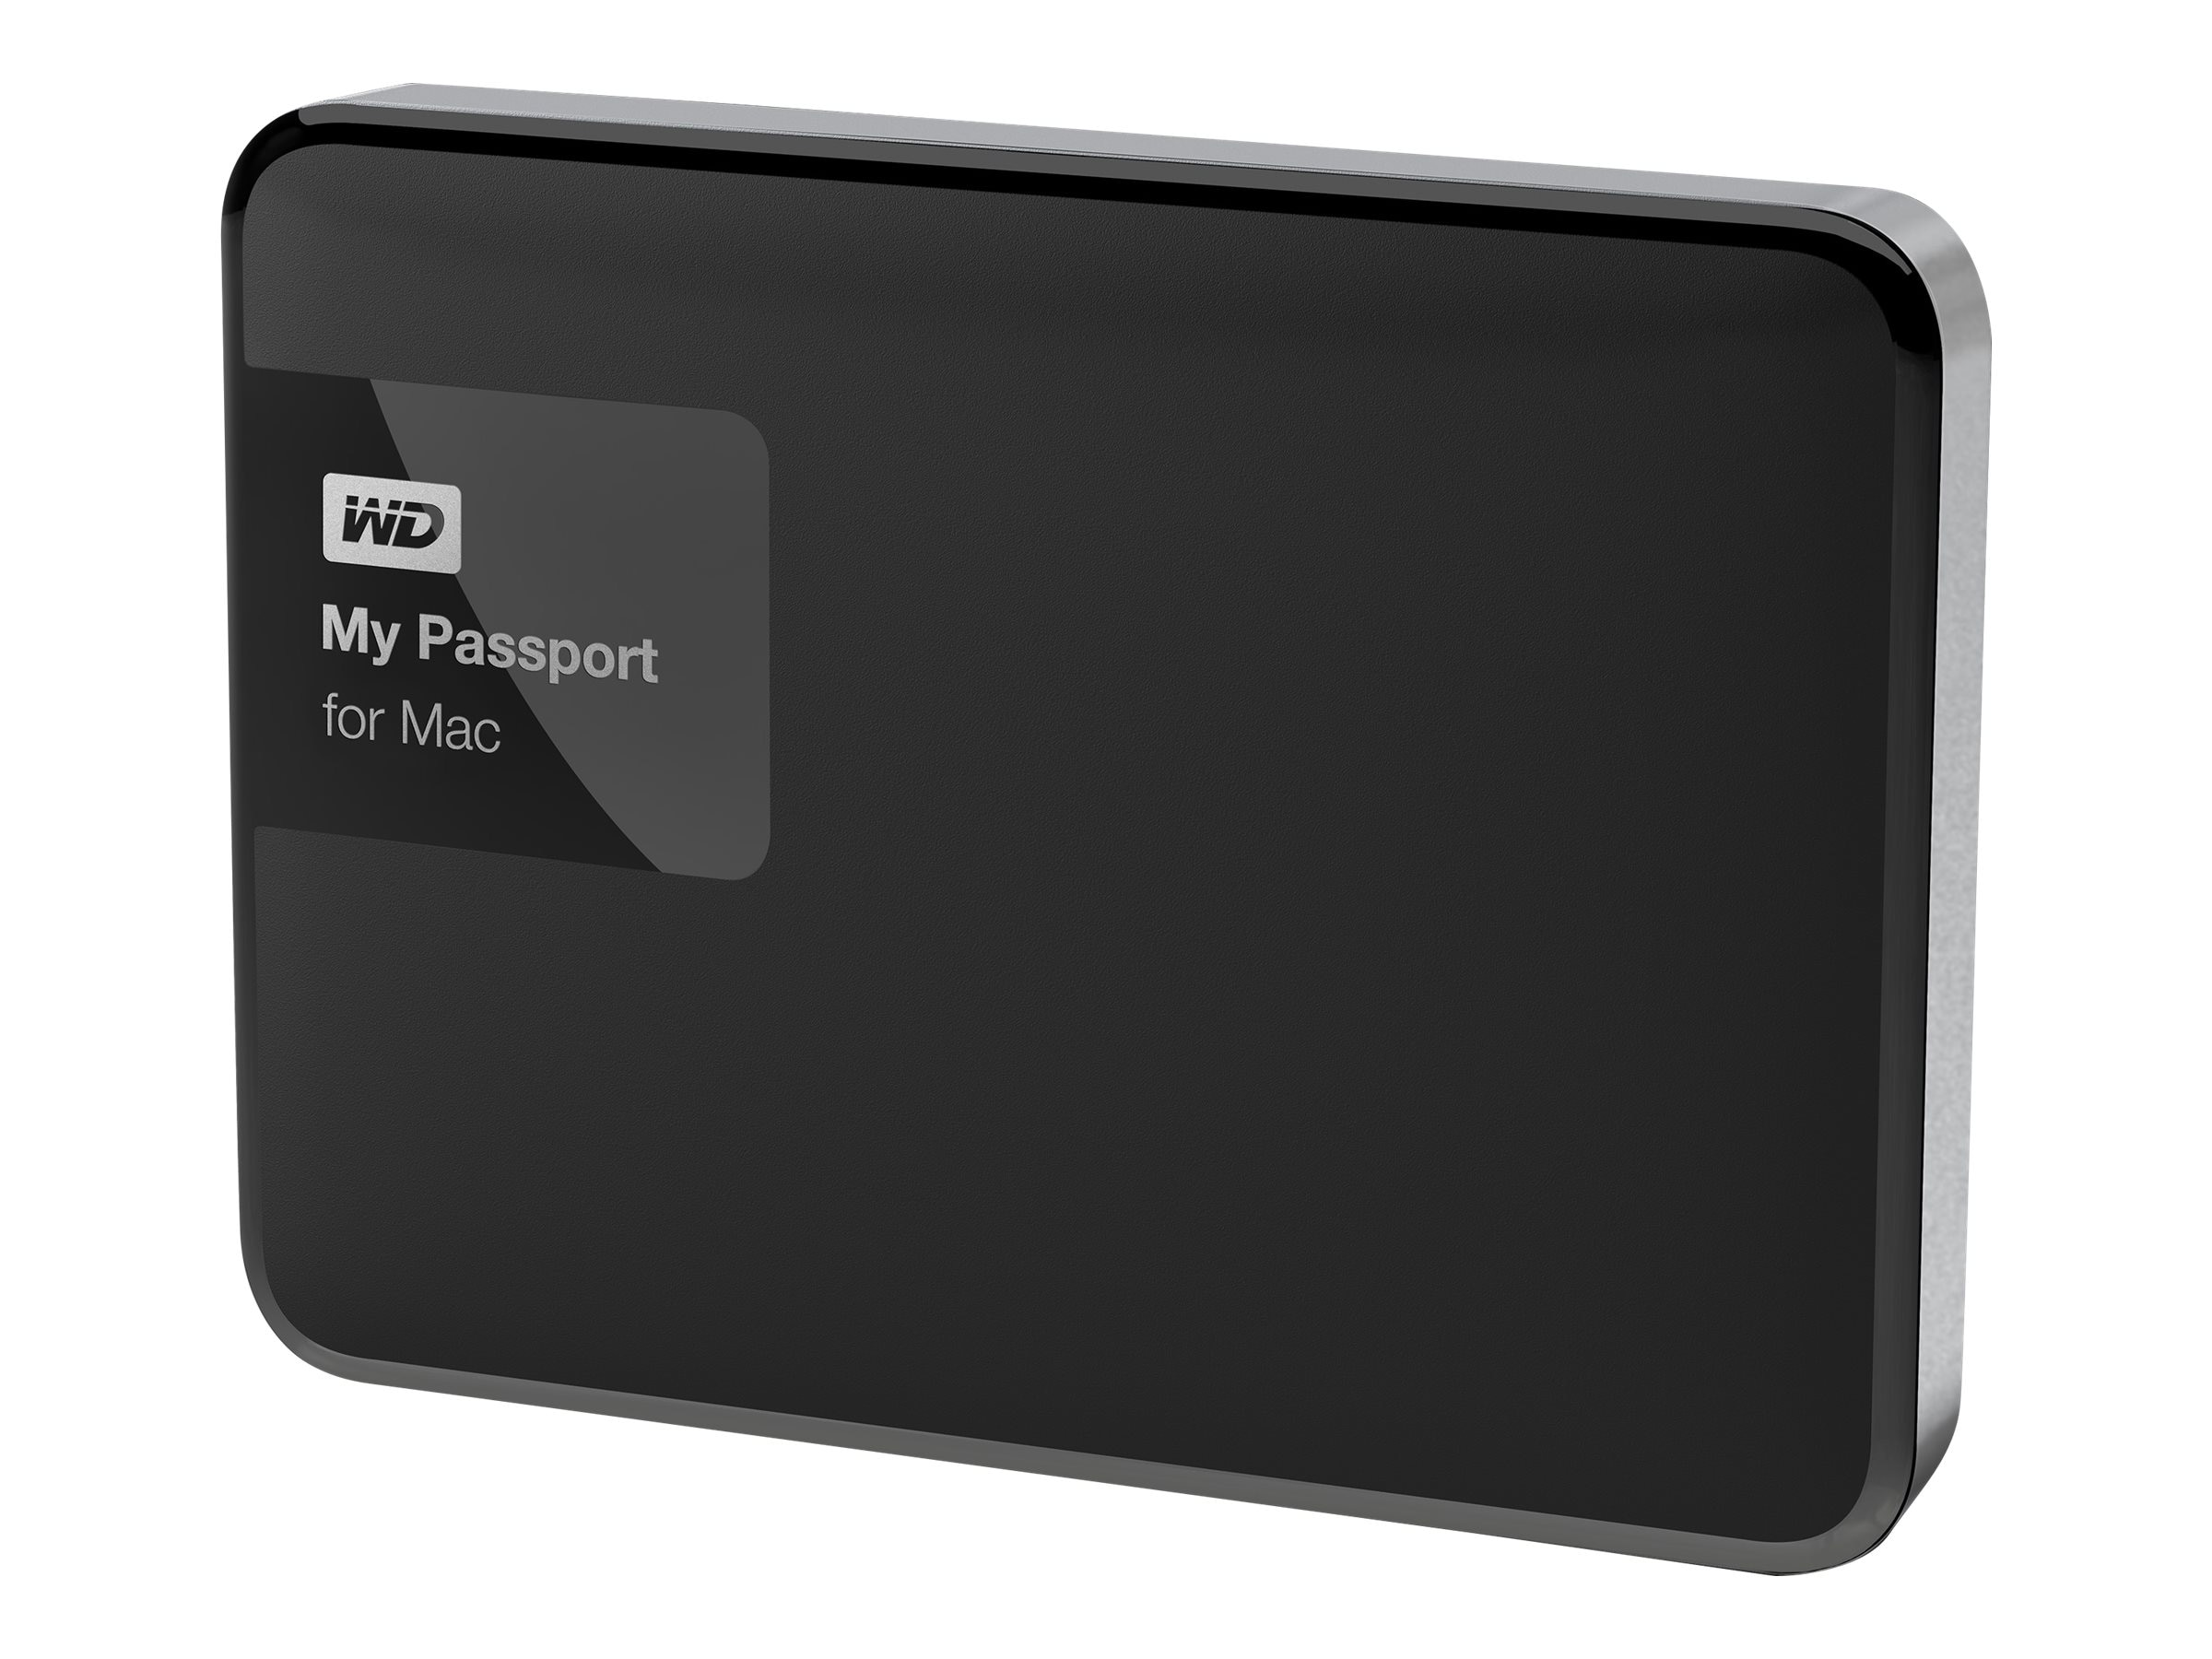 WD 3TB My Passport for Mac USB 3.0 Portable Hard Drive